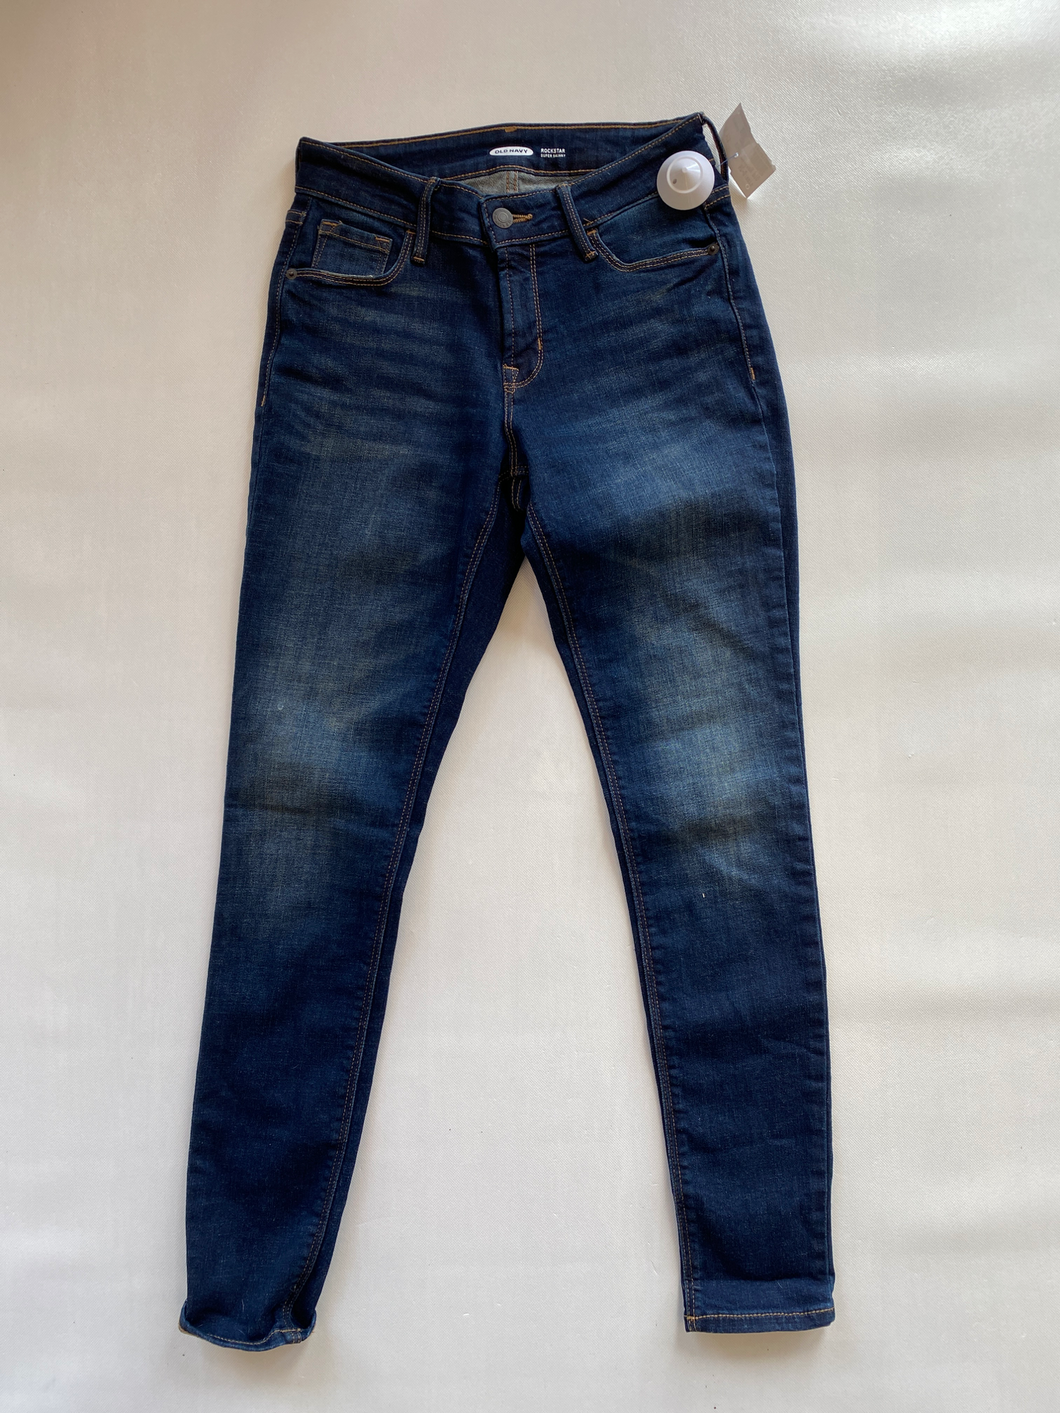 Old Navy Denim Size 0 (24)